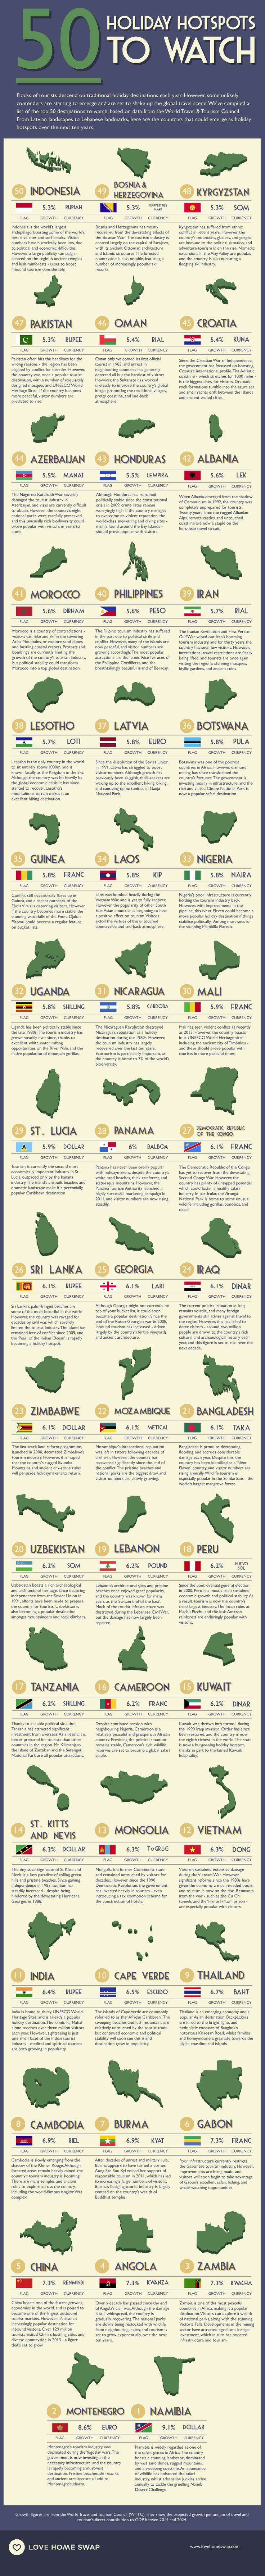 50 Holiday Hotspots to Watch Up and coming travel destinations (infographic)